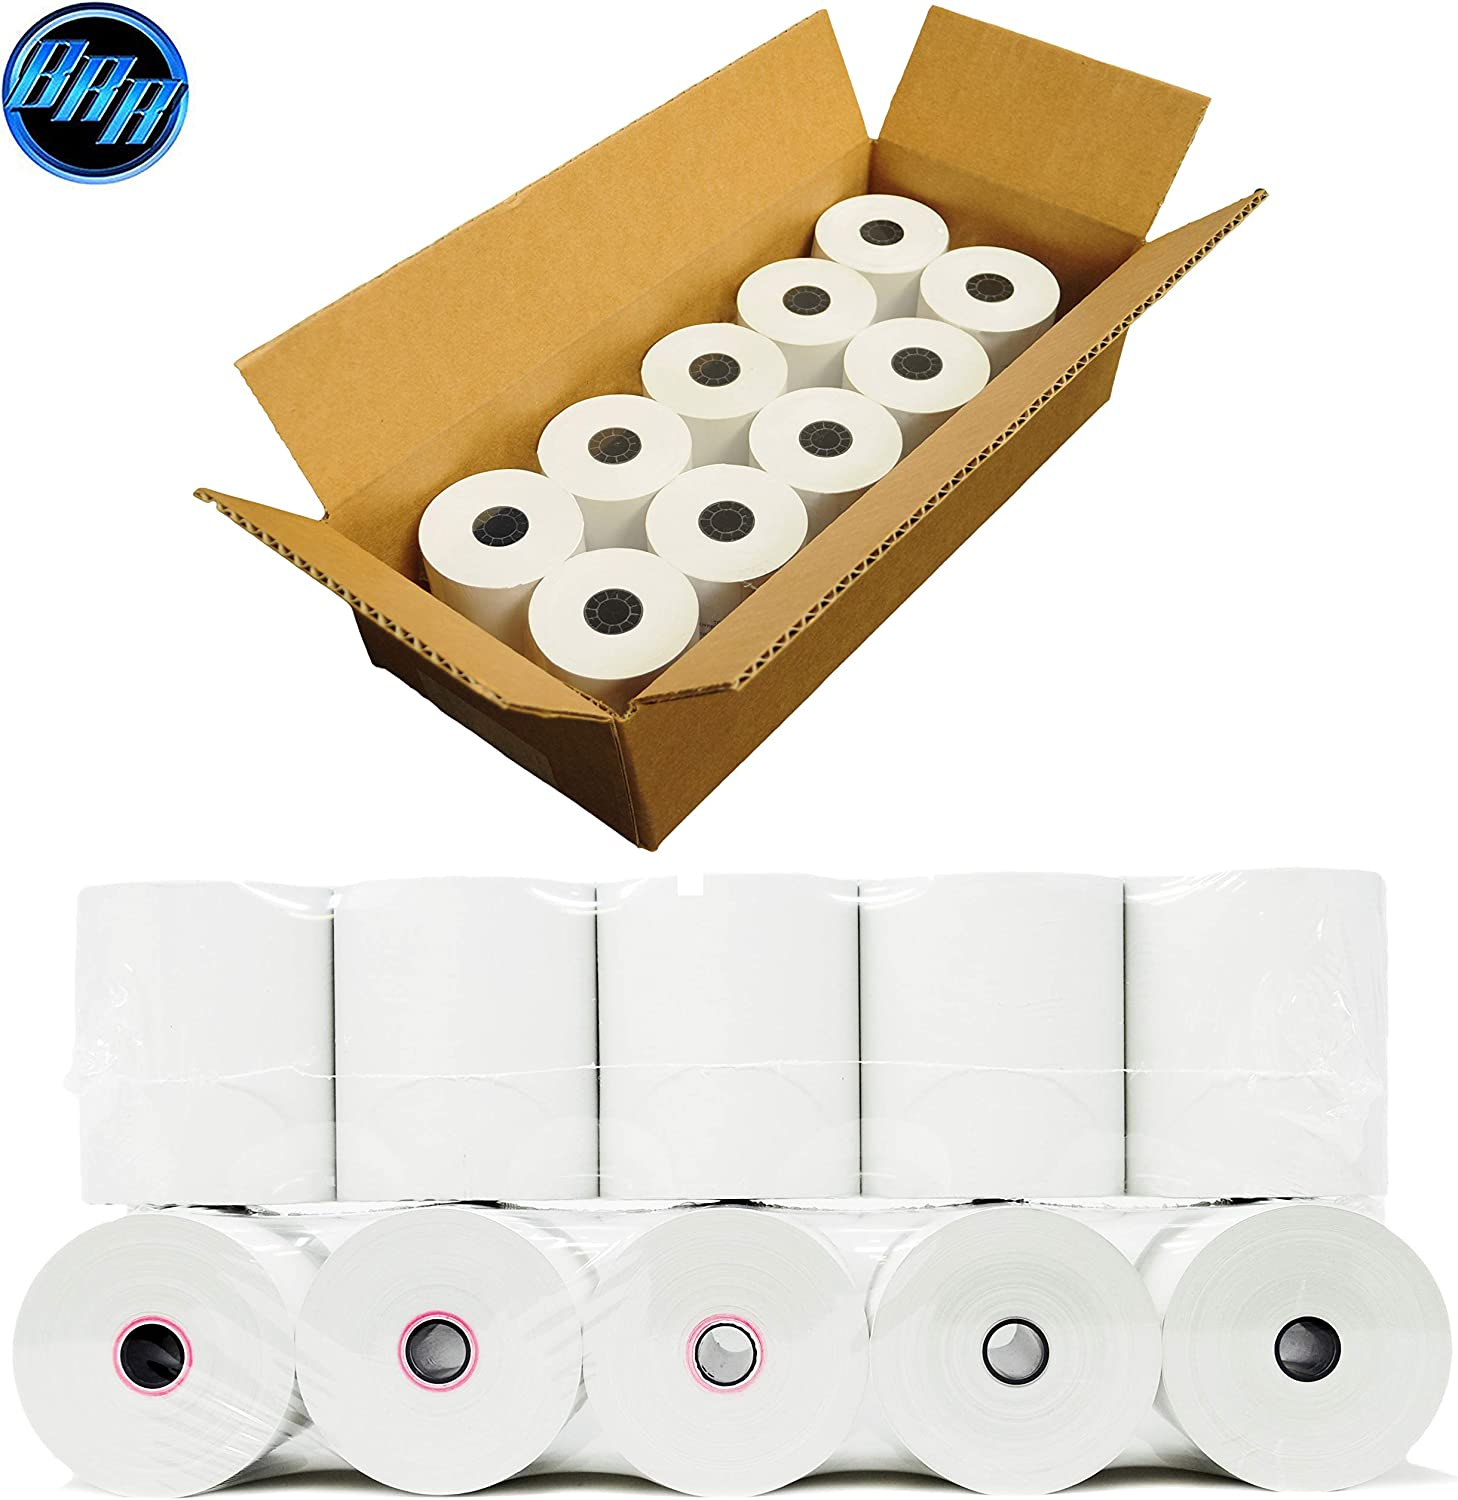 12 Pack Square POS Register Thermal Receipt Paper Rolls Made in USA BPA FREE 3-1//8 inches x 230ft